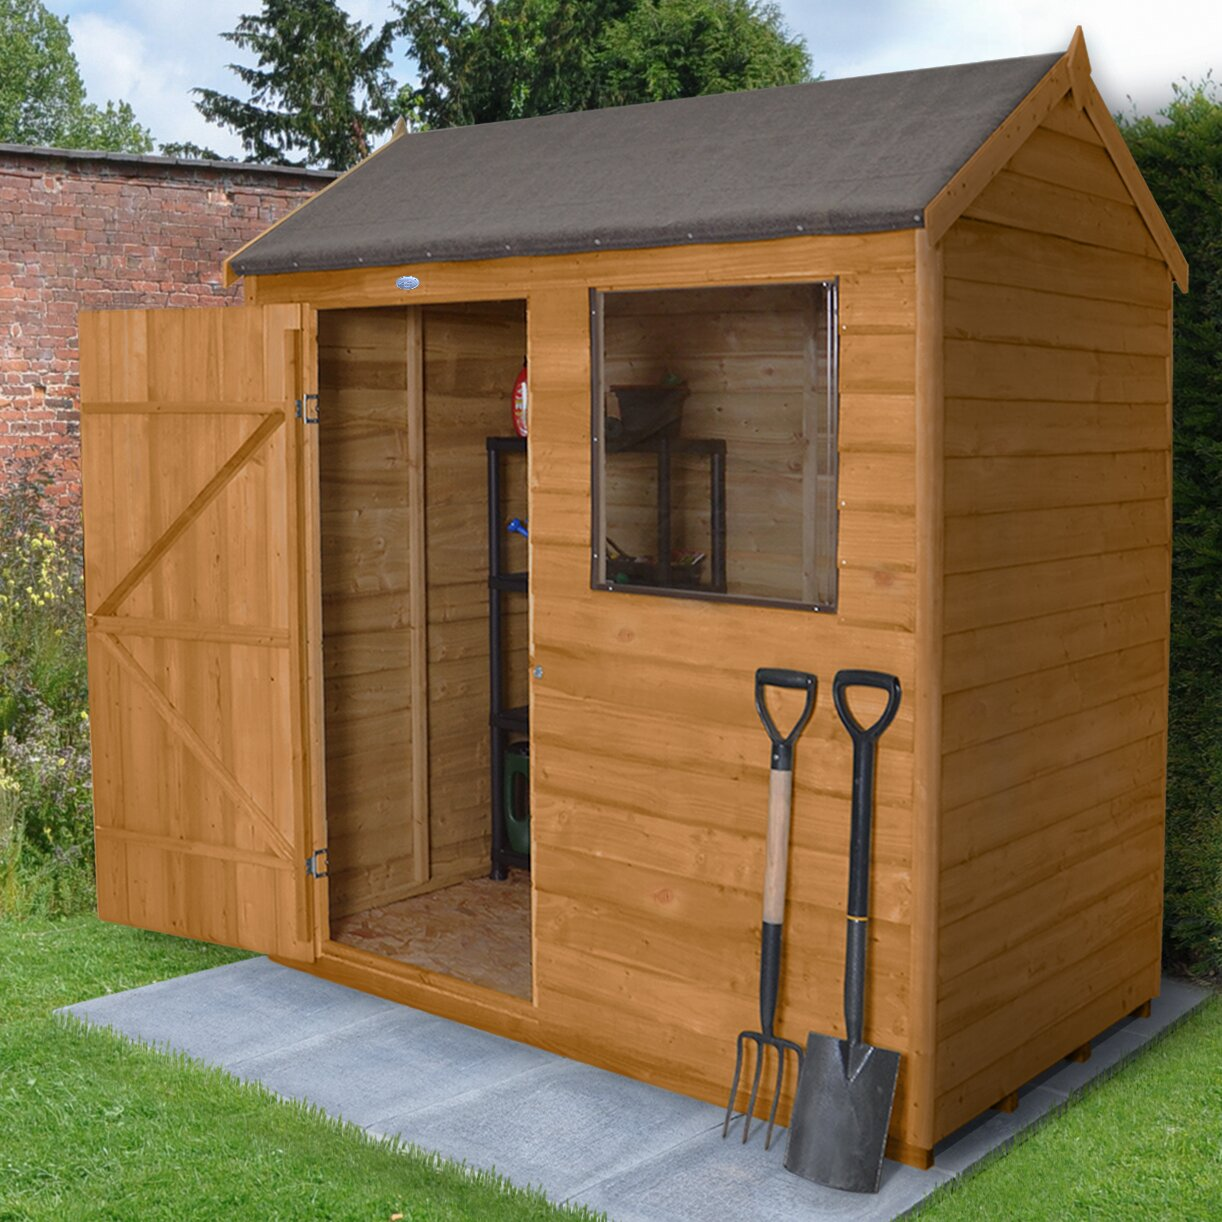 Forest Garden 6 X 4 Wooden Storage Shed & Reviews